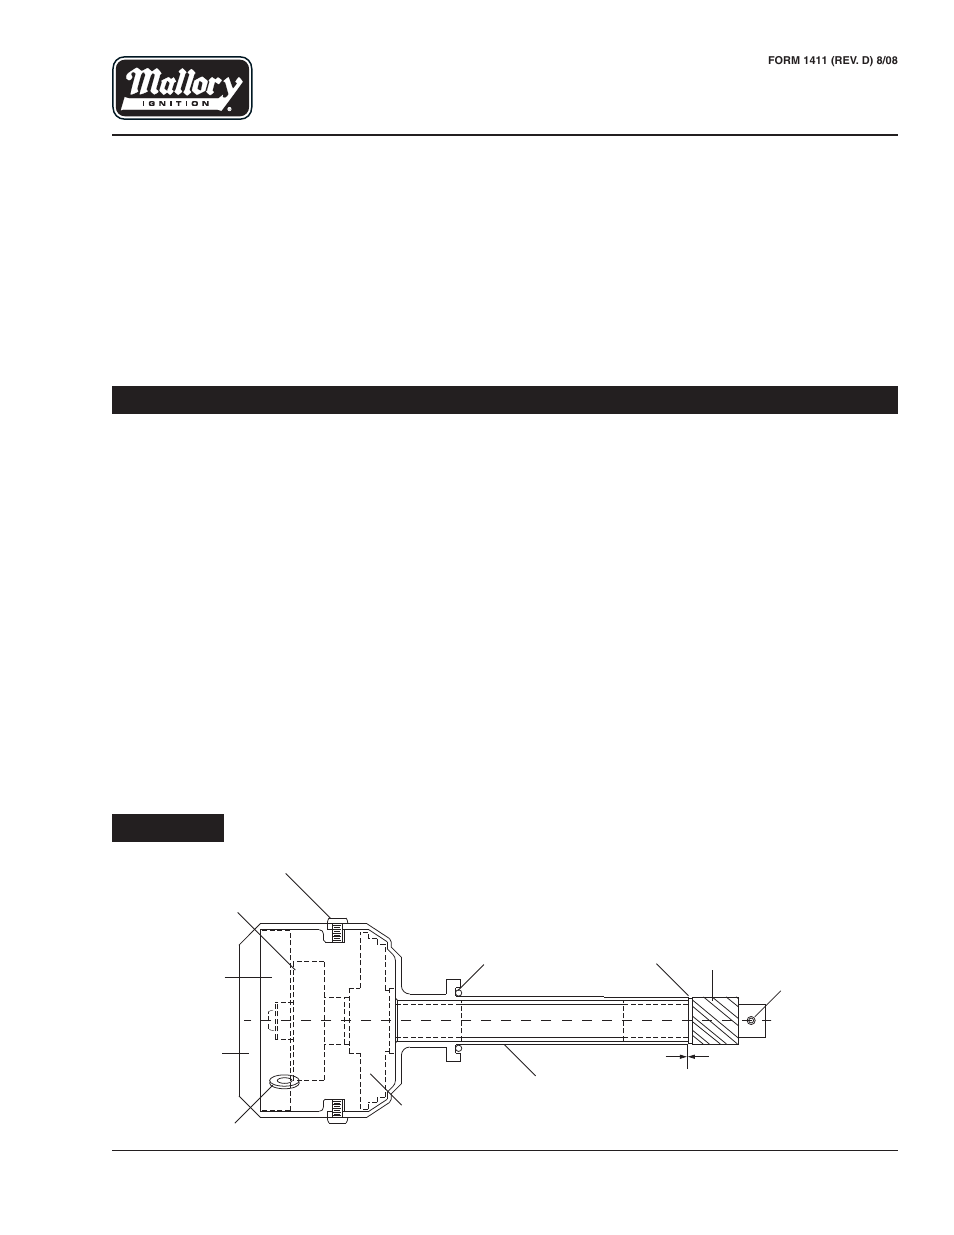 medium resolution of mallory ignition mallory unilite distributor 556 user manual 2 pages basic ignition wiring diagram mallory unilite wiring diagram for motorcycle